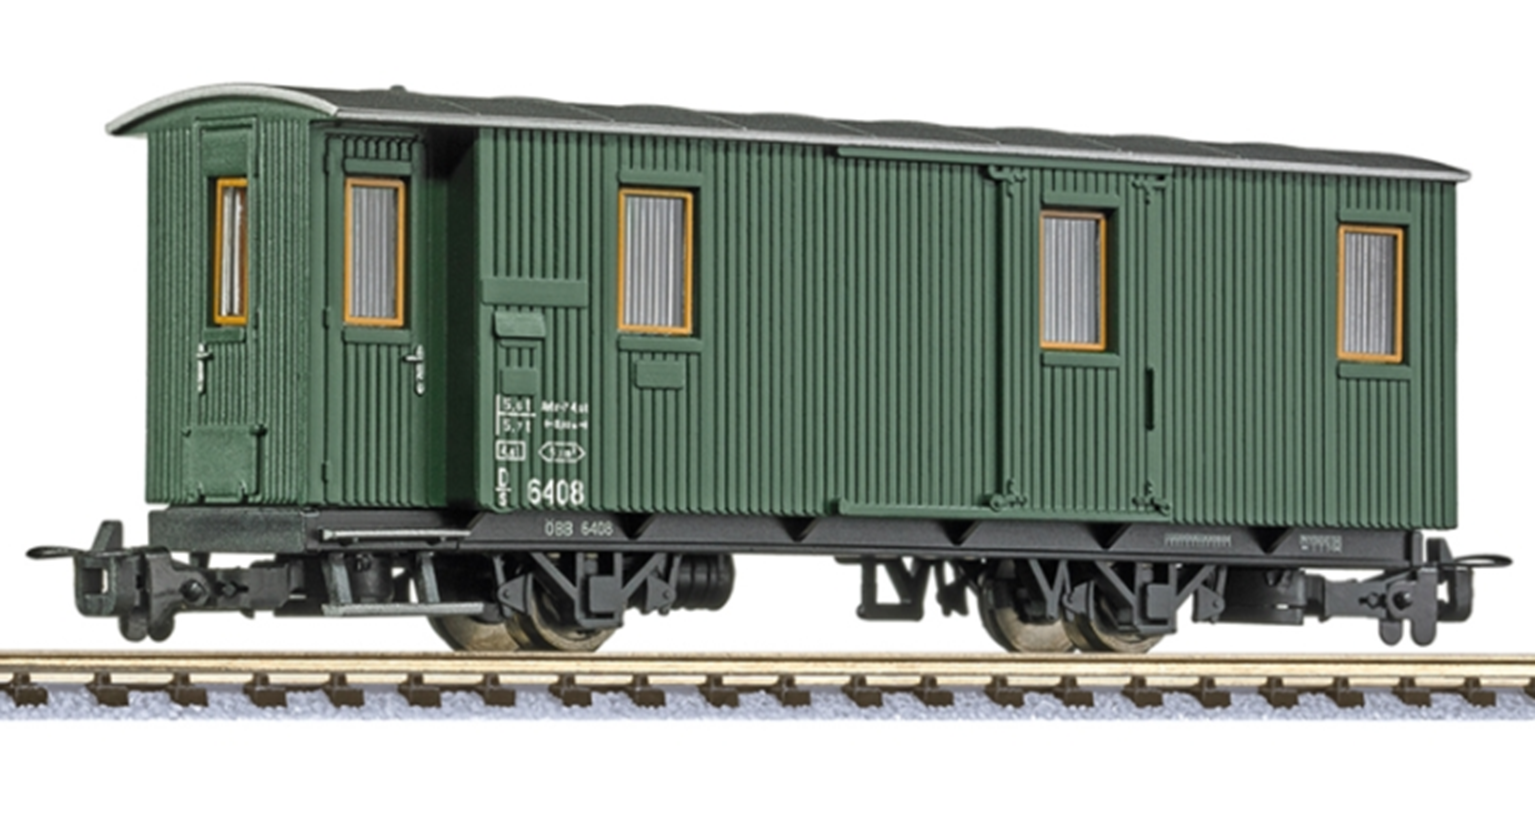 2-axle baggage car D/s 6408, green